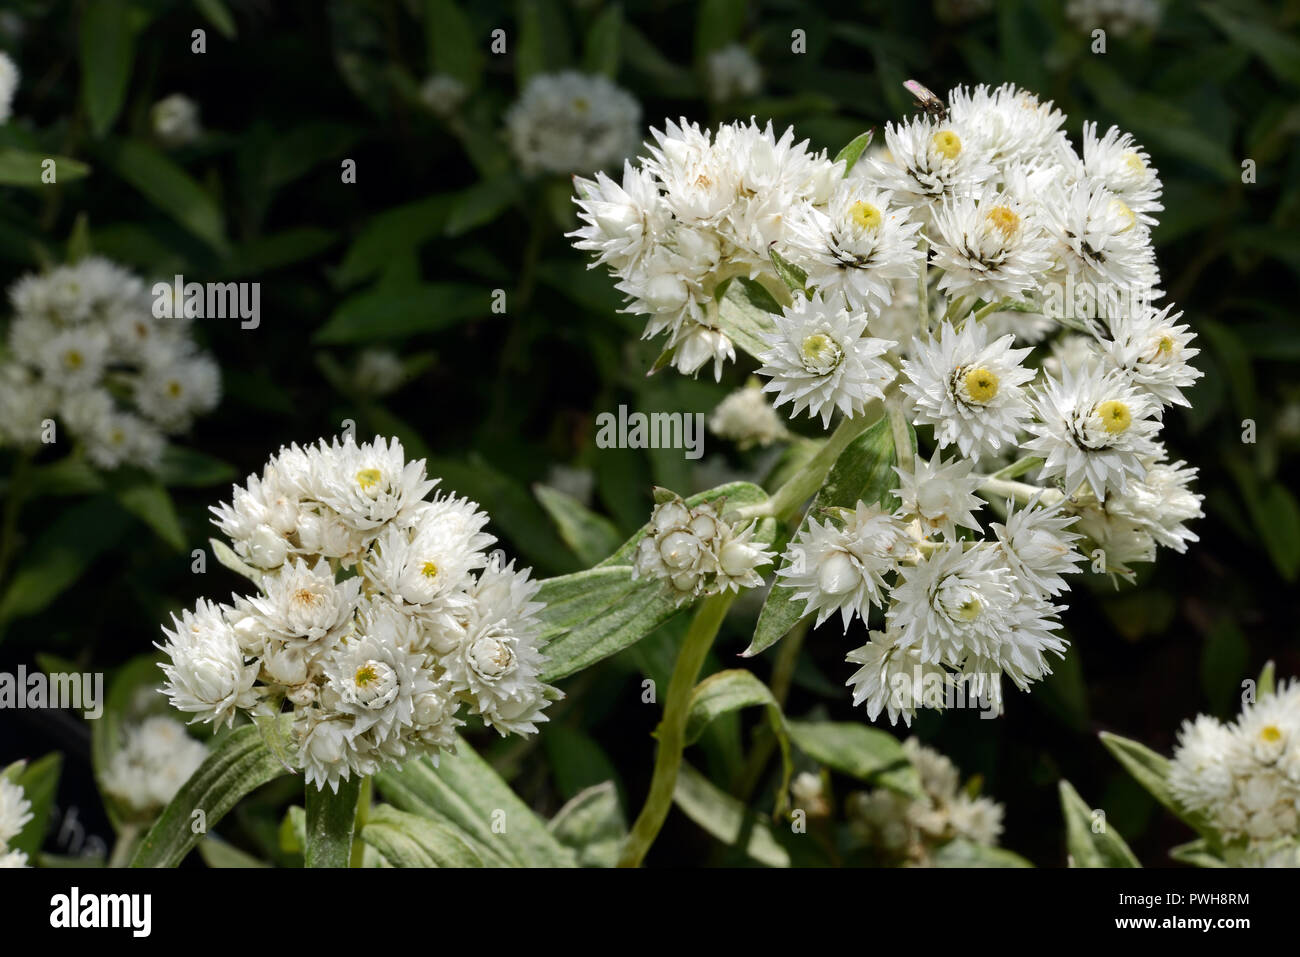 Anaphalis margaritacea (pearly everlasting) is an Asian and North American species. It is found in woodlands, sand dunes and disturbed habitats. - Stock Image